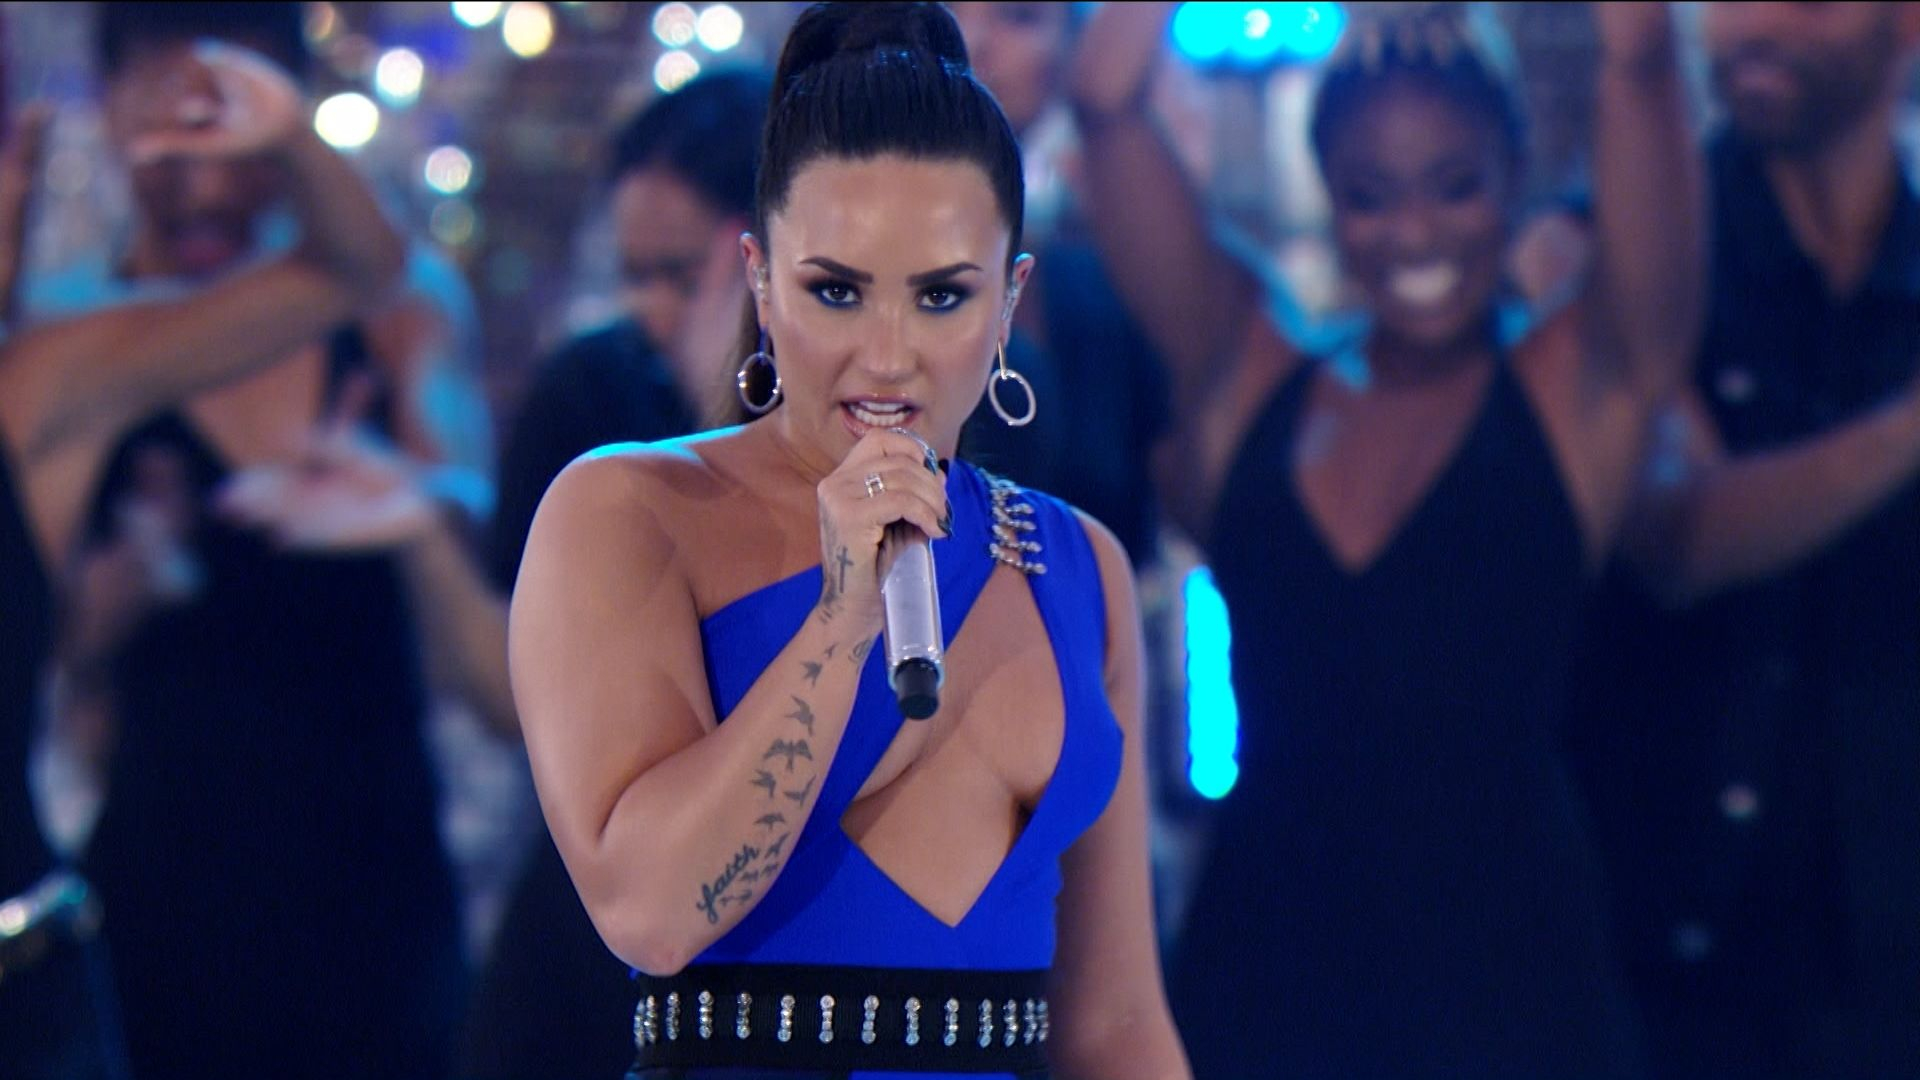 vmas_2017_performance_Demi_Lovato.jpg (1920×1080)